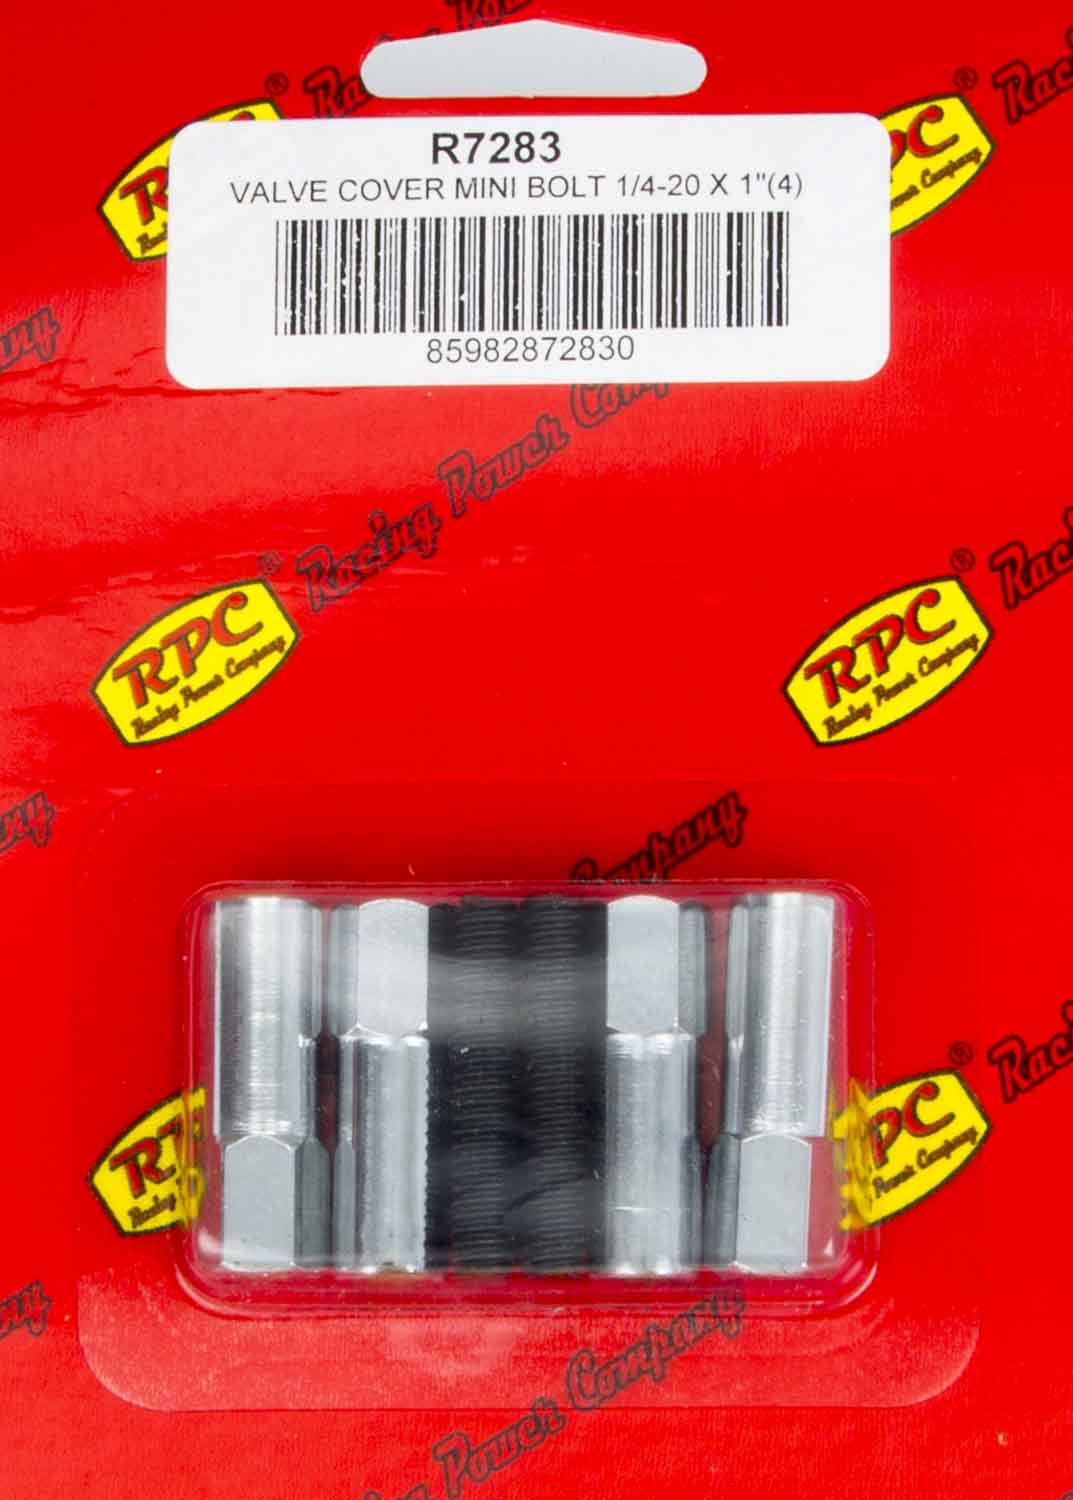 Racing Power Company R7283 Valve Cover Fastener, Stud, 1/4-20 in Thread, 1.375 in Long, Mini Bolt, 1-1/4 in Long, Steel, Chrome, Set of 4